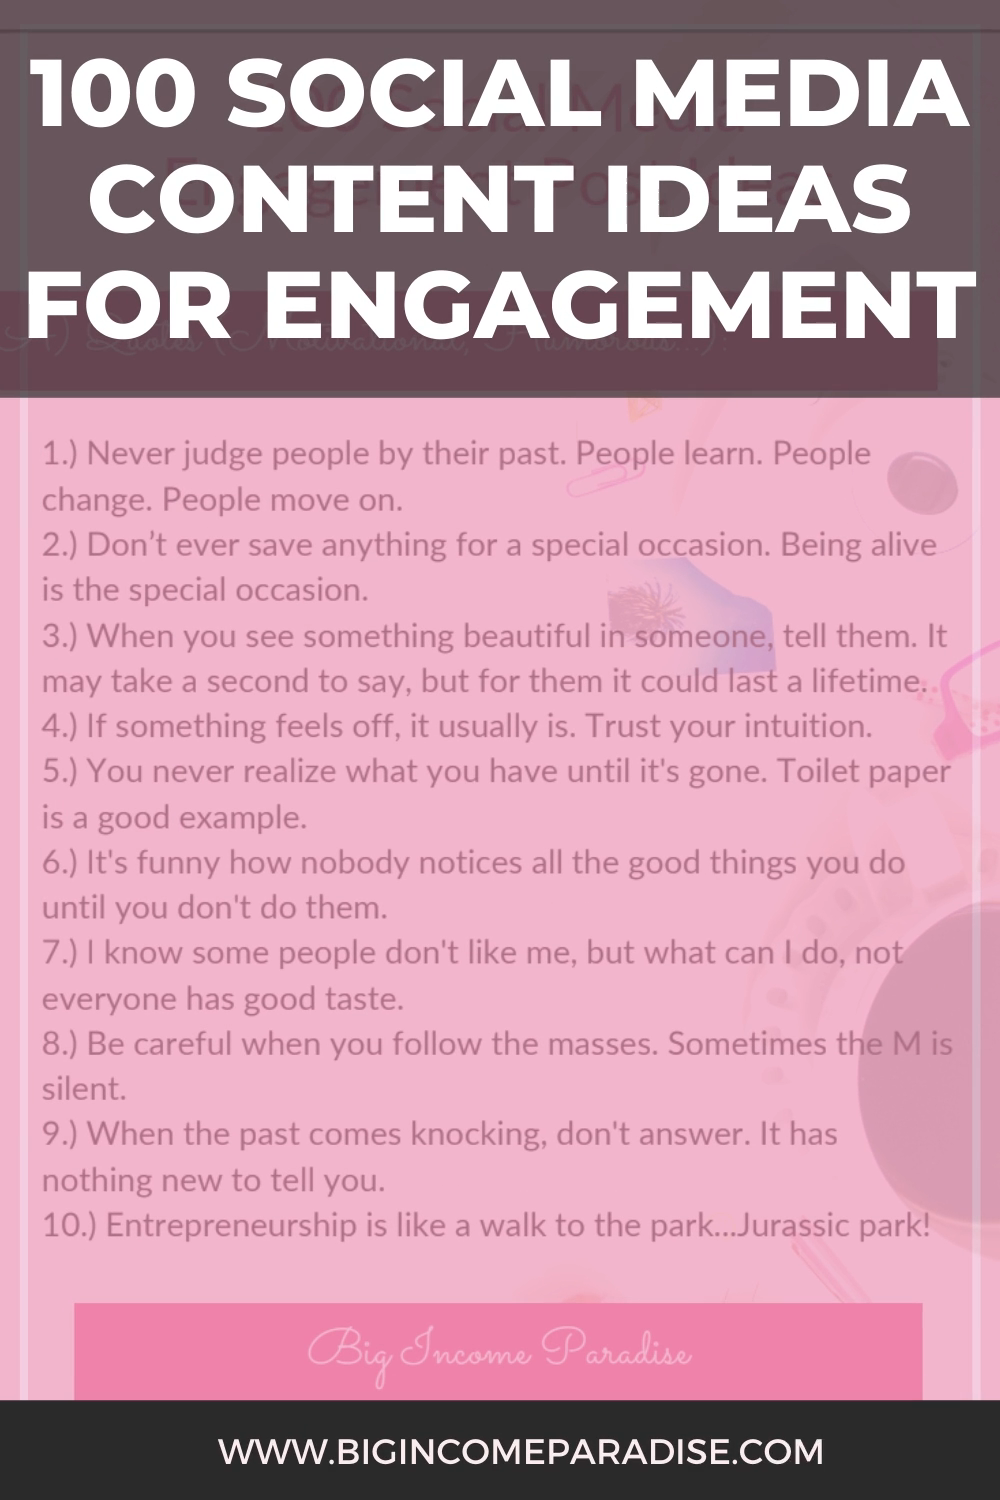 100 Social Media Content Ideas For Engagement